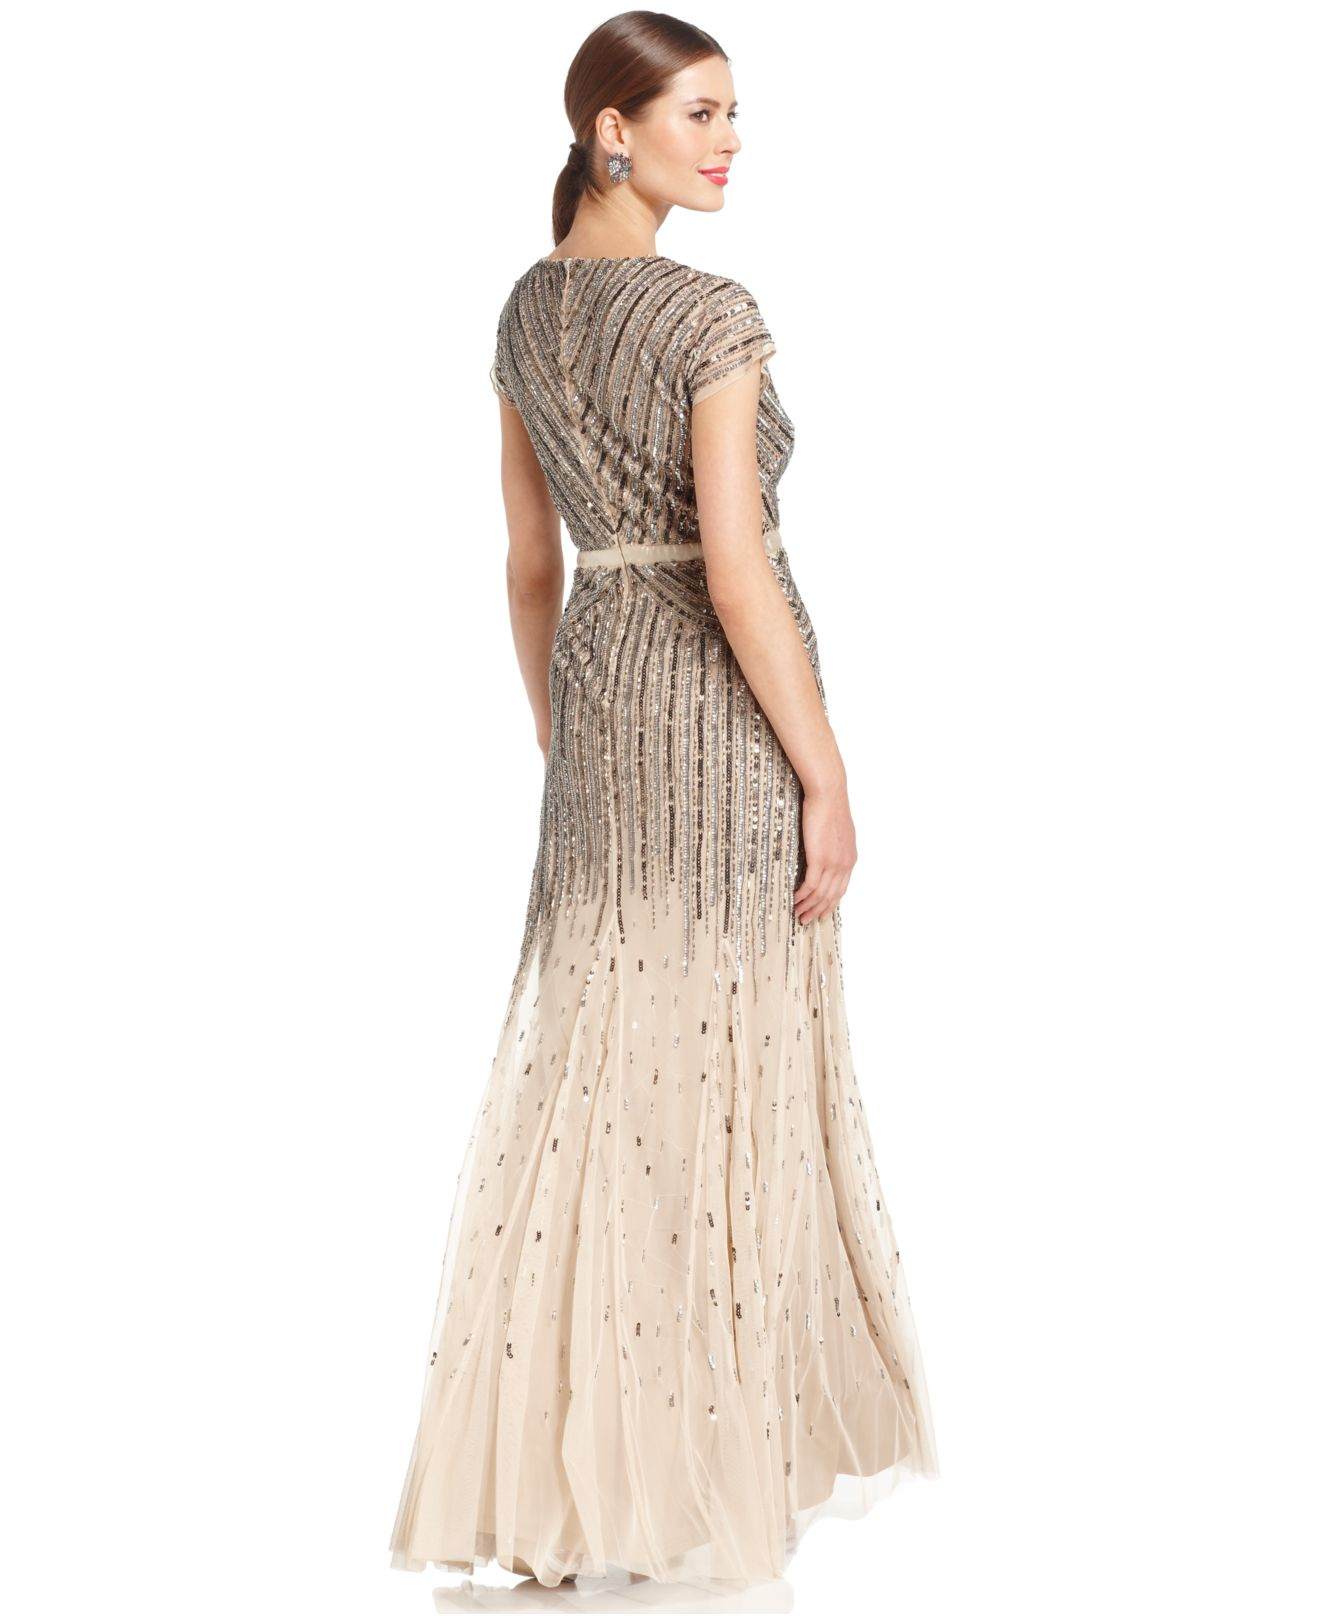 Papell cap sleeve beaded sequined gown dresses women macy s - Gallery Previously Sold At Macy S Women S Needle Thread Coppelia Women S Adrianna Papell Floral Dress